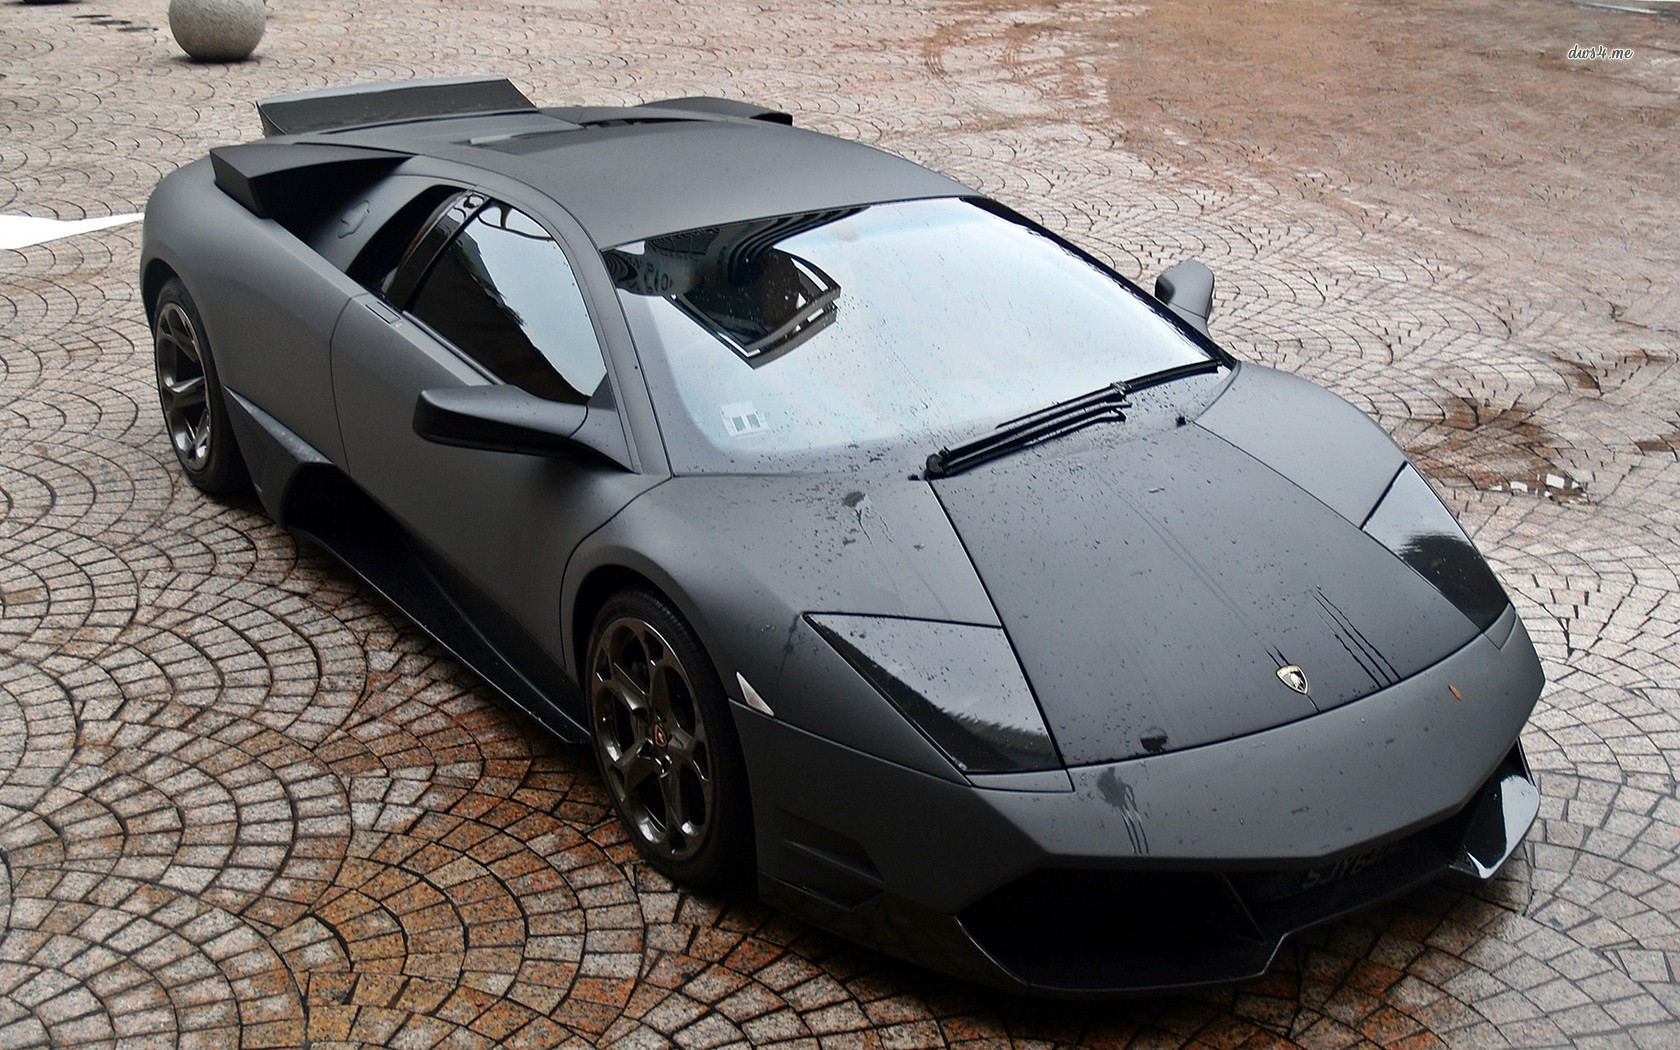 Lamborghini Murcielago 2014 Utility Vehicles Utility Vehicles